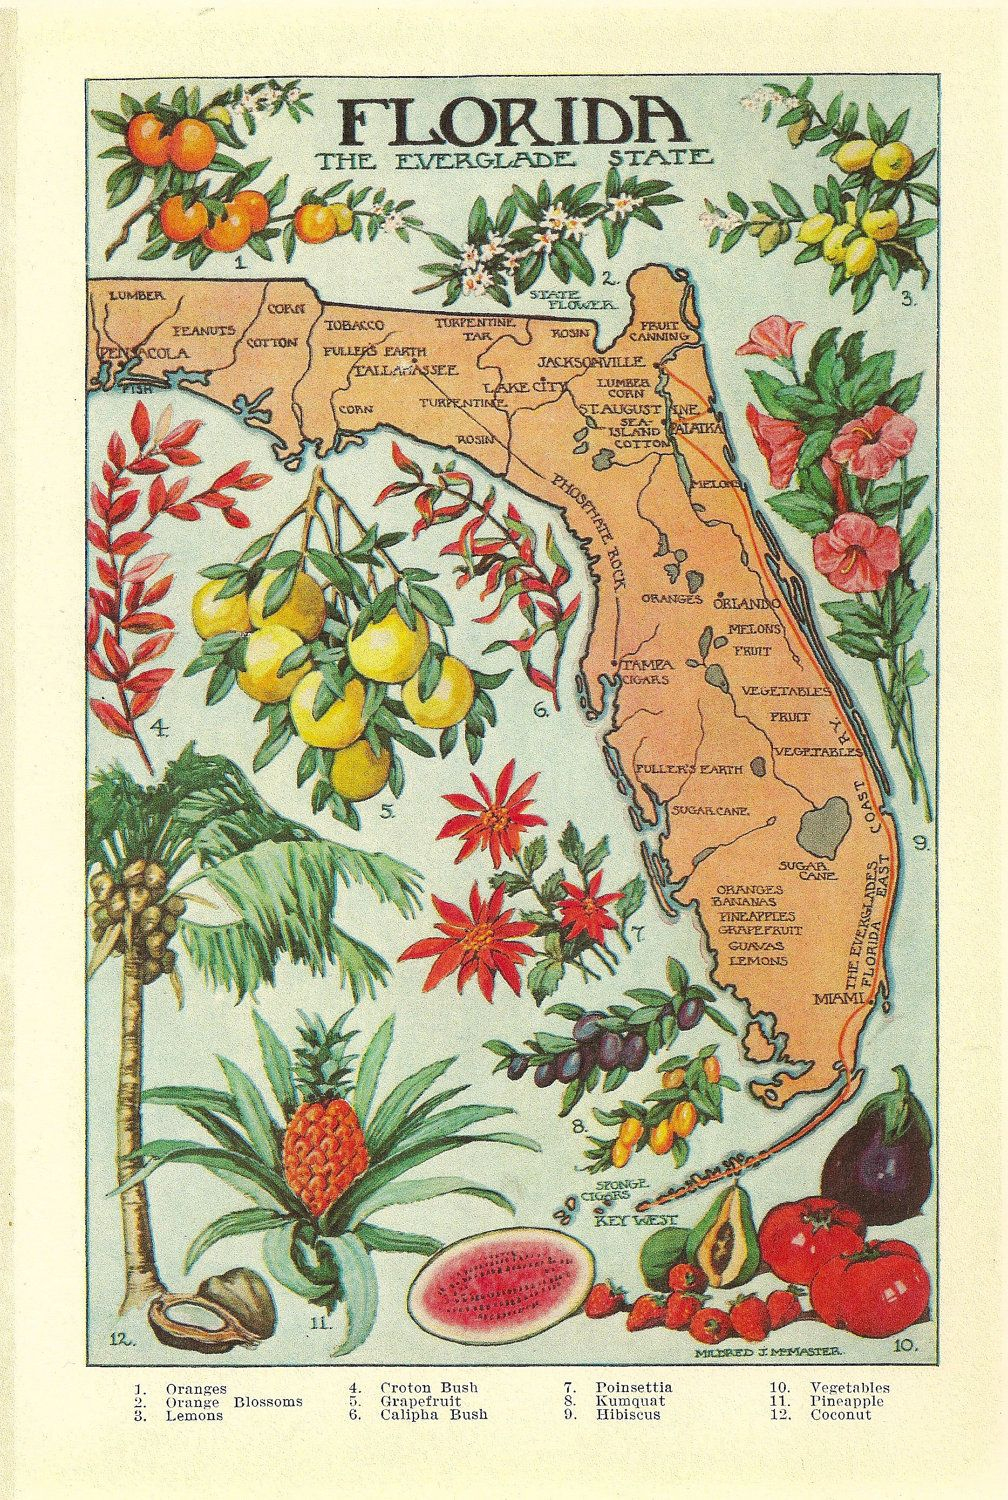 1912 Vintage Florida Illustrated Map - Colorful And Lovely | What - Vintage Florida Map